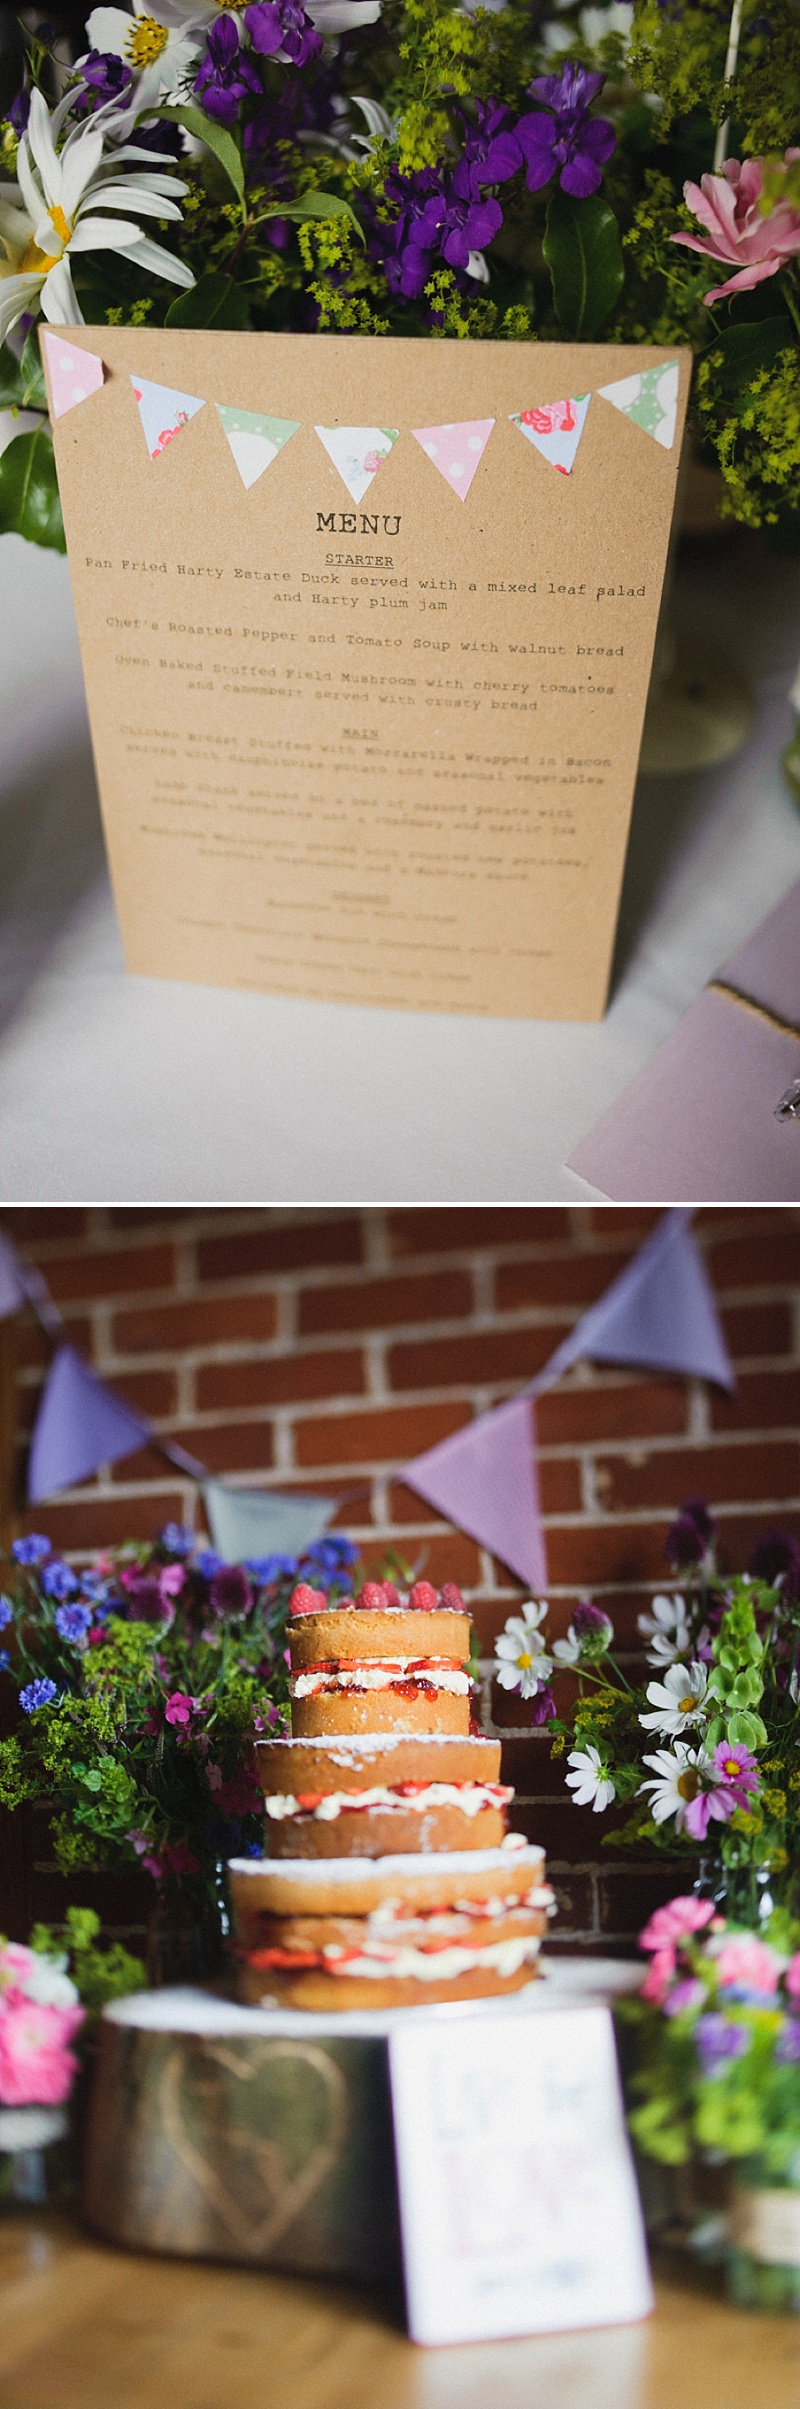 Vintage Inspired Barn Wedding At The Ferry House Inn Kent, Bride In Balta By Pronovias, Images By Hannah-May_0013